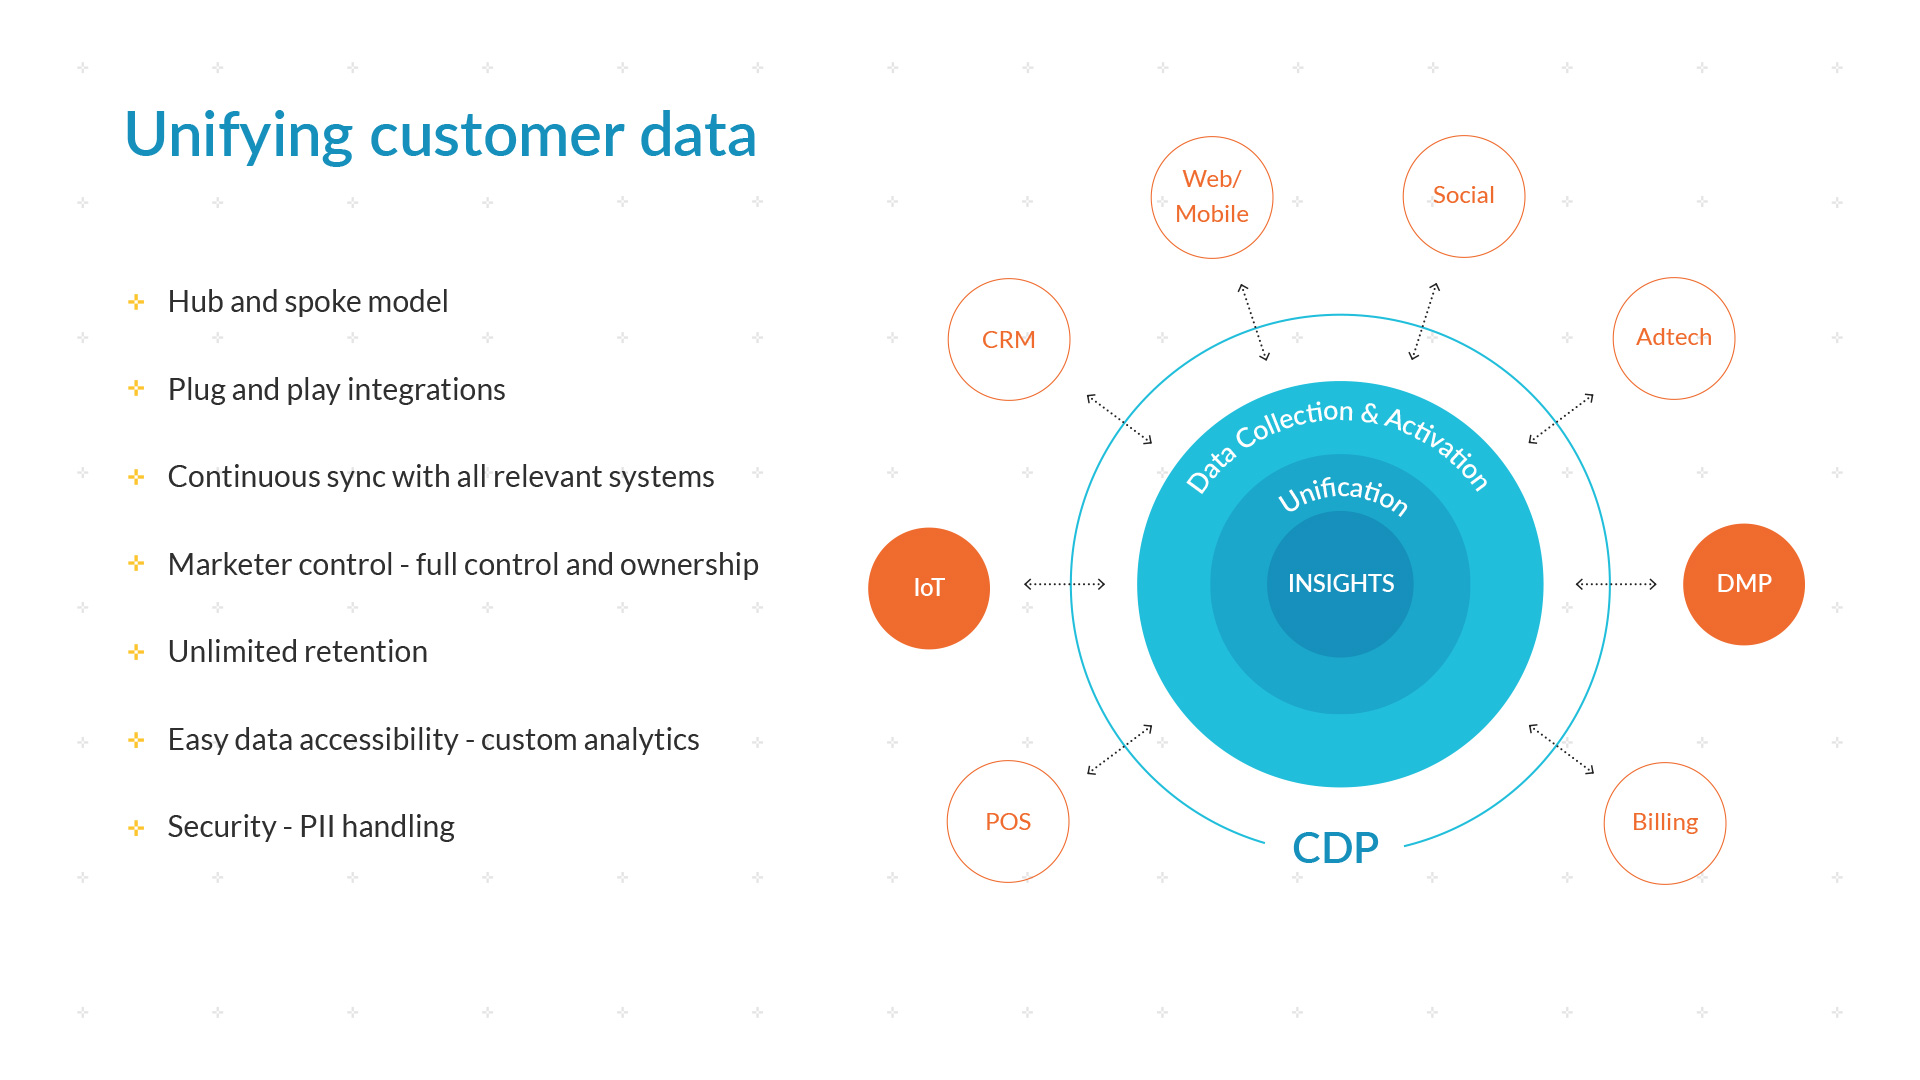 Unifying Customer Data with CDP